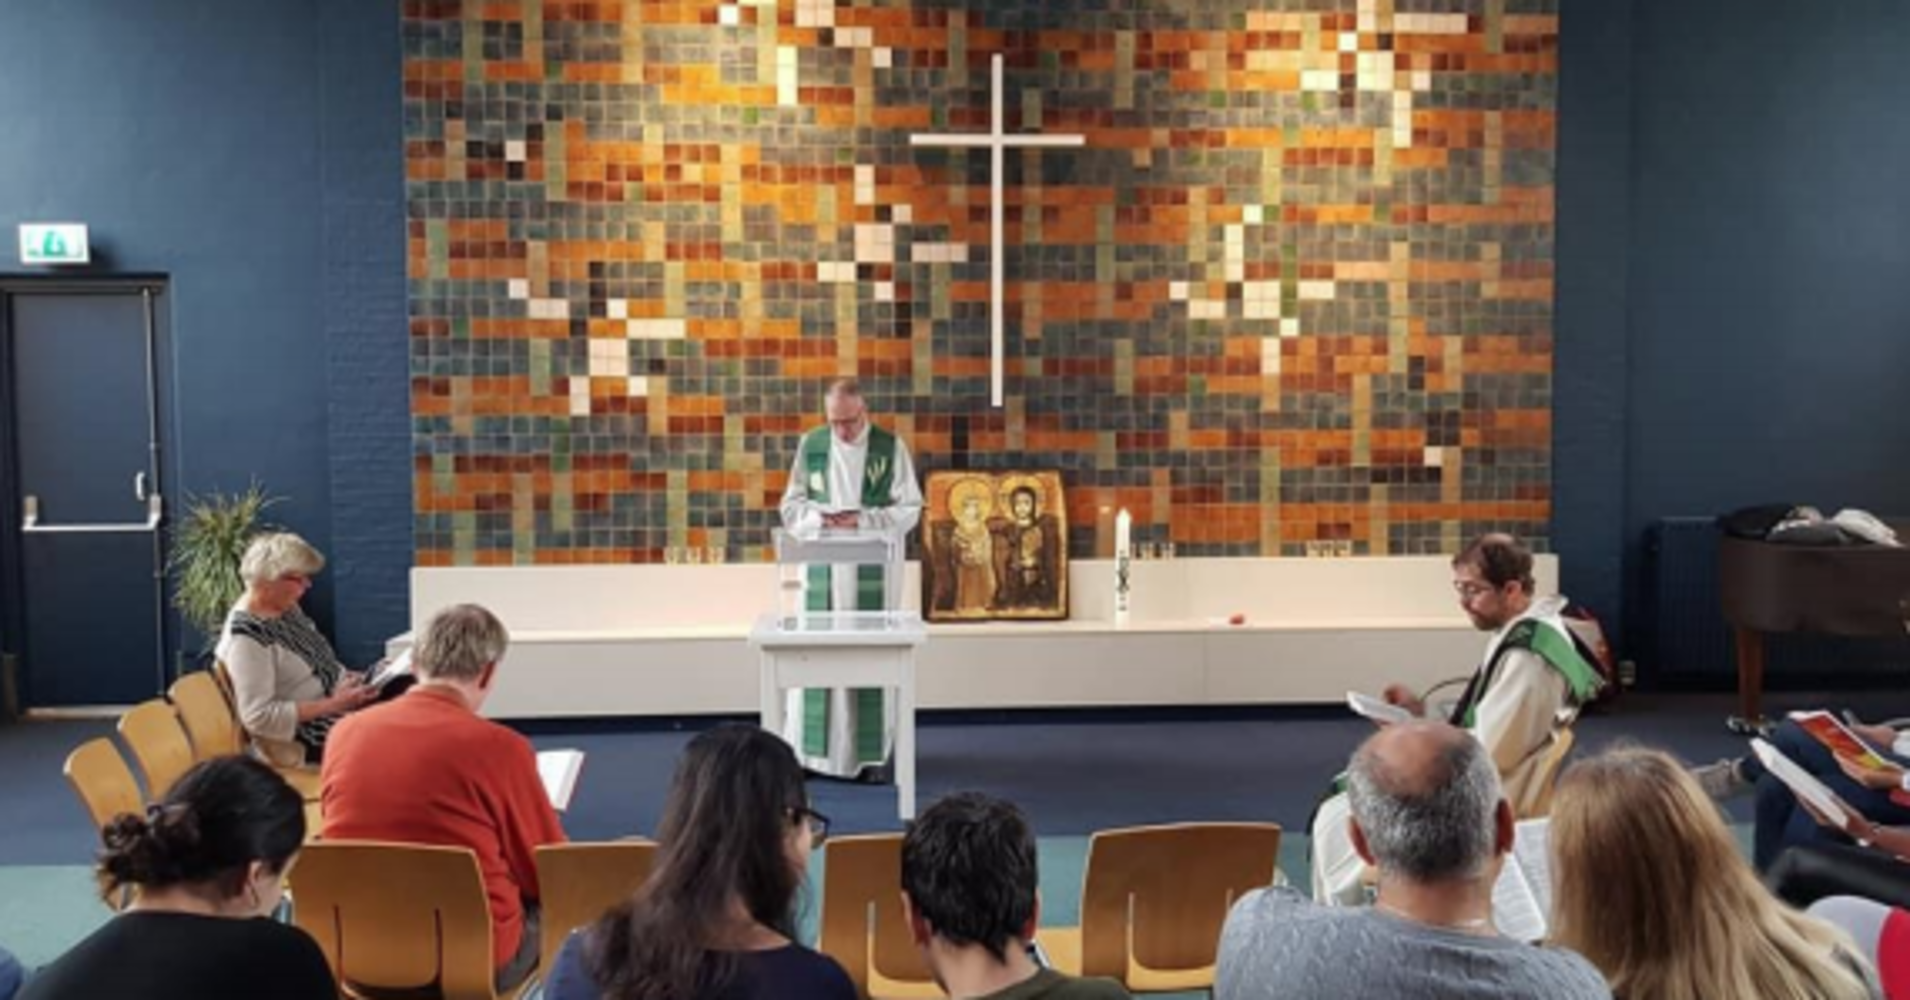 Church Holds Continuous Worship Service To Prevent Family's Deportation